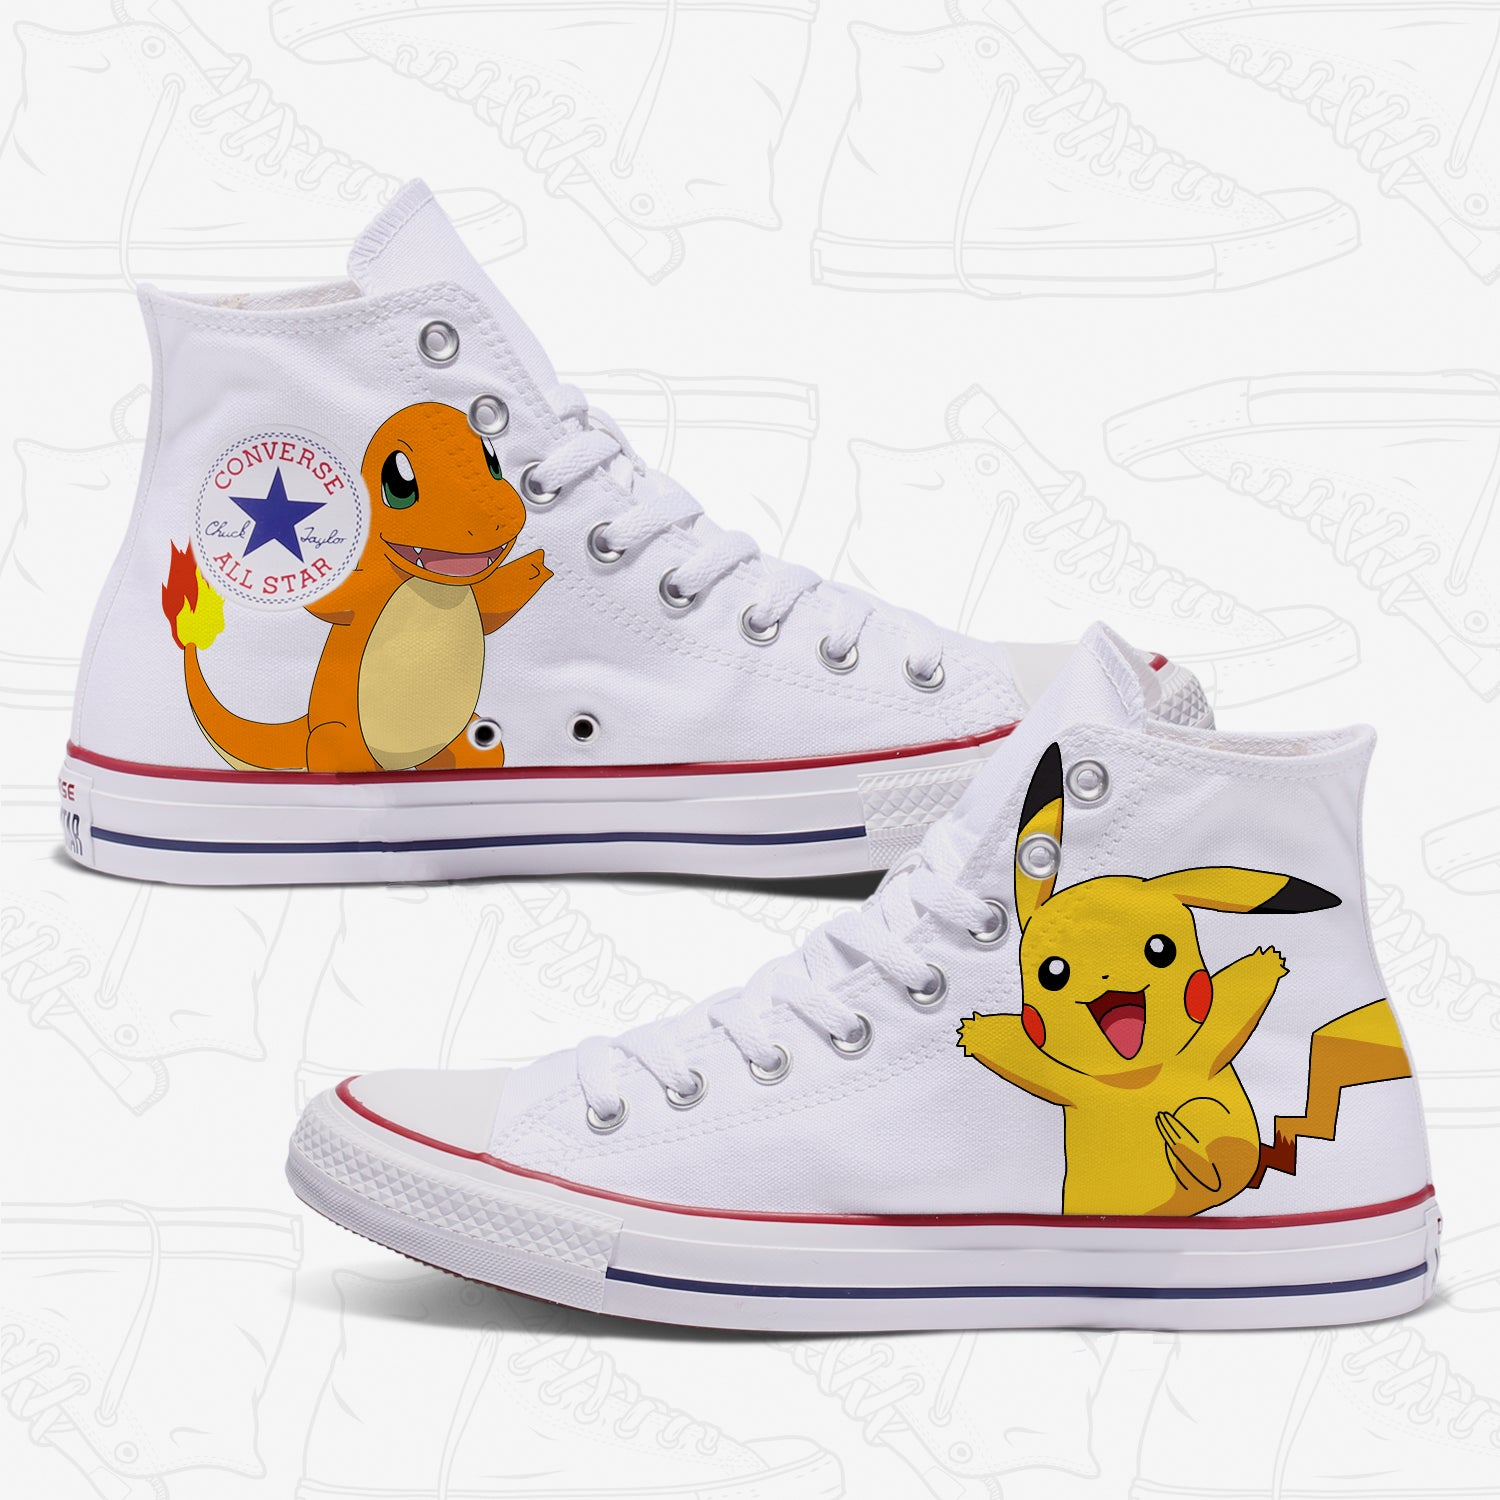 Pokemon Custom Converse